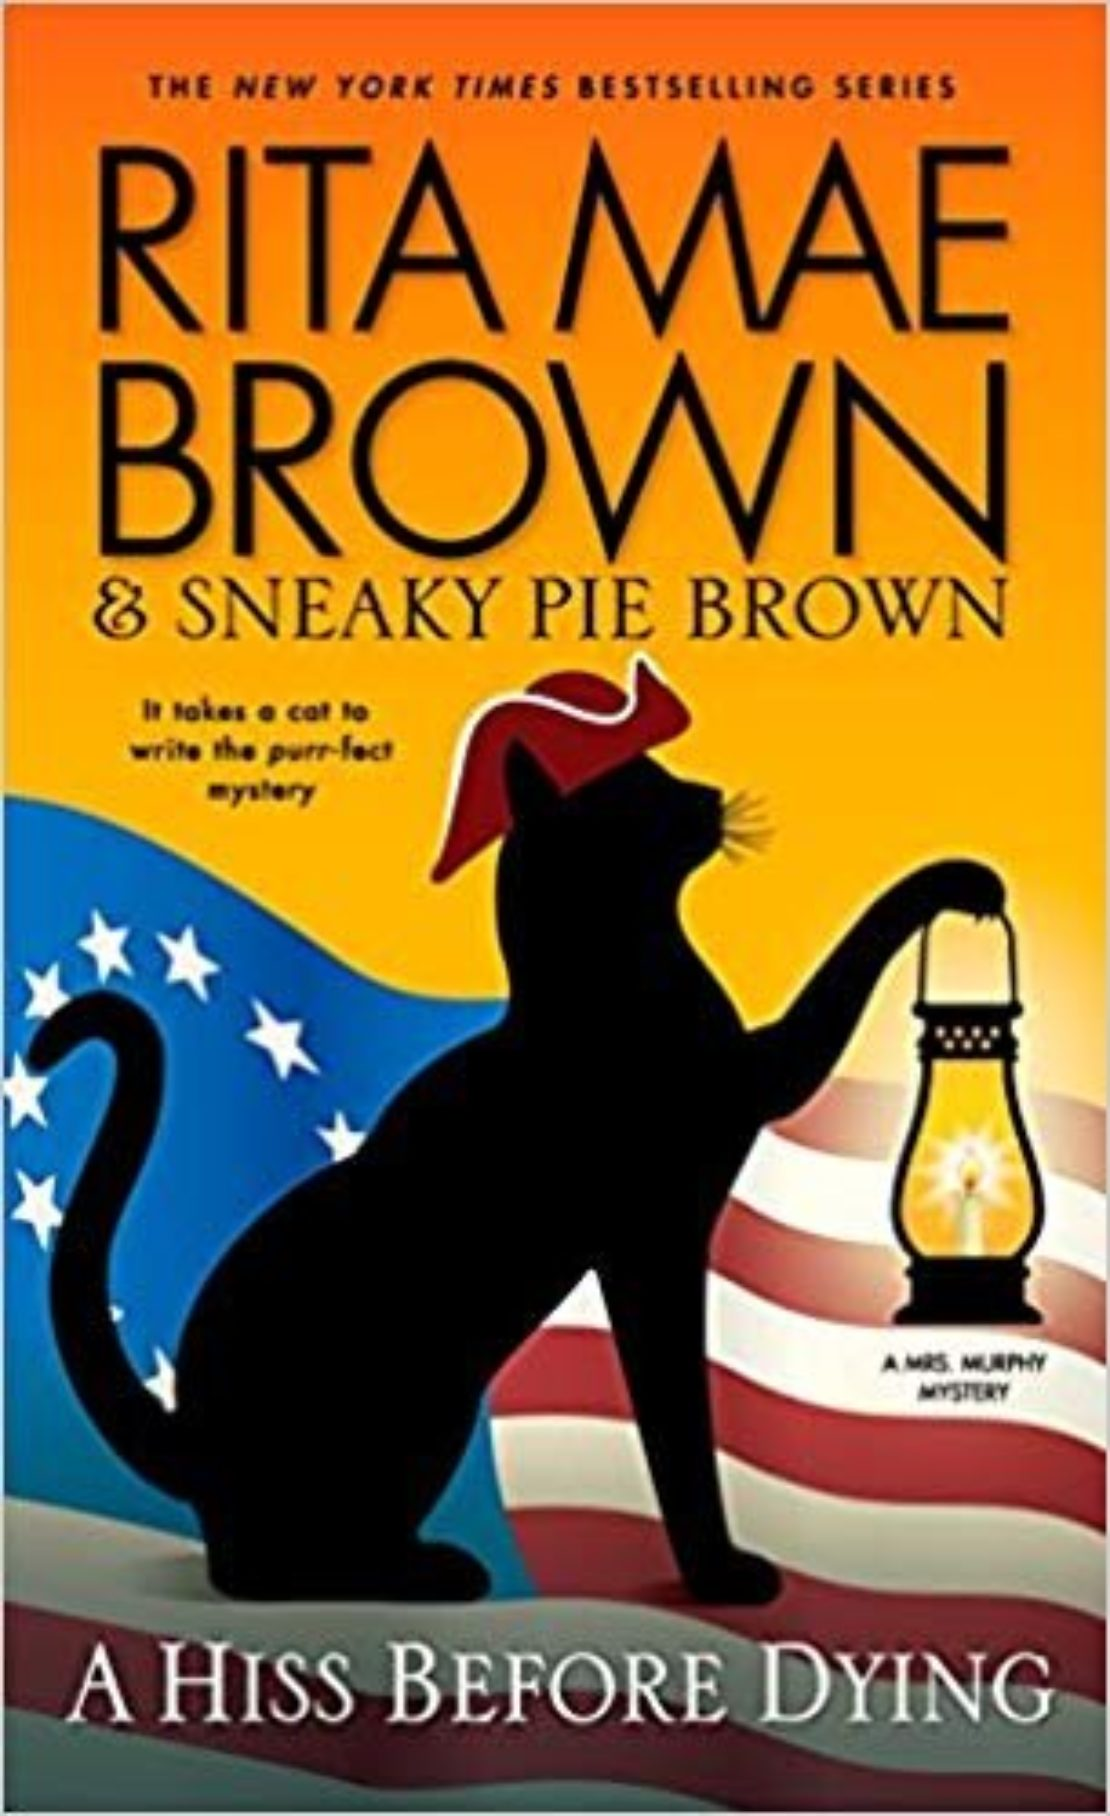 Book cover of A Hiss Before Dying by Rita Mae Brown and Sneaky Pie Brown. Black cat silhouette with red Paul Revere hat and holding a lantern backed by a U.S. flag with 13 stars.